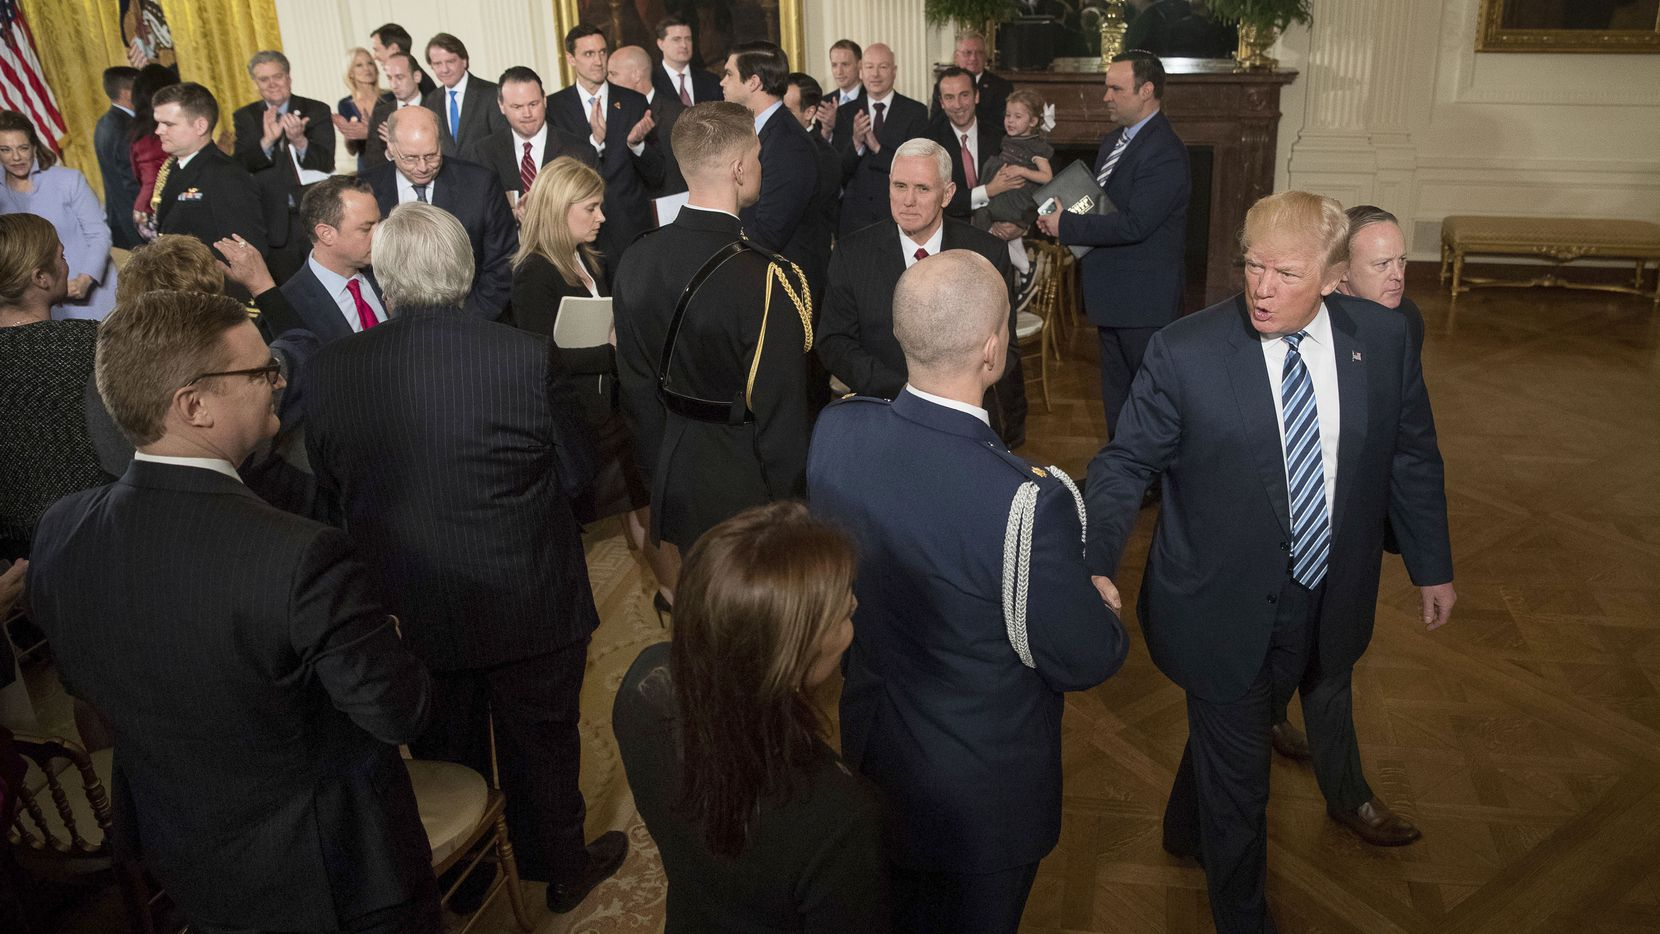 President Donald Trump departs following a White House senior staff swearing in ceremony in the East Room of the White House, Sunday, Jan. 22, 2017, in Washington.